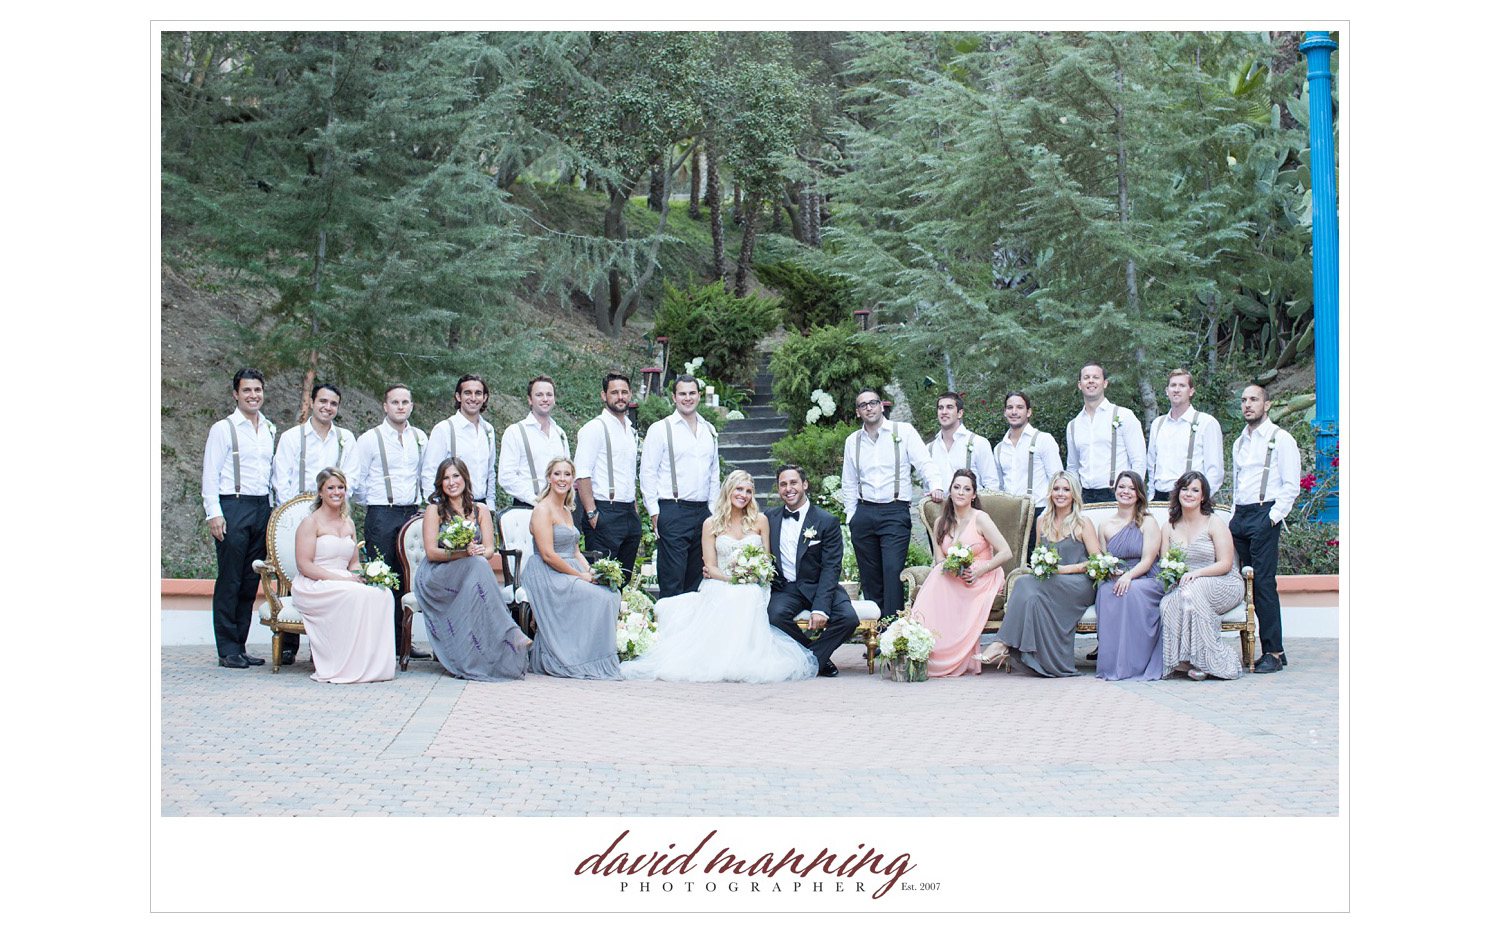 The-Montage-Rancho-Las-Lomas-Wedding-David-Manning-Photographers130921-0026.jpg